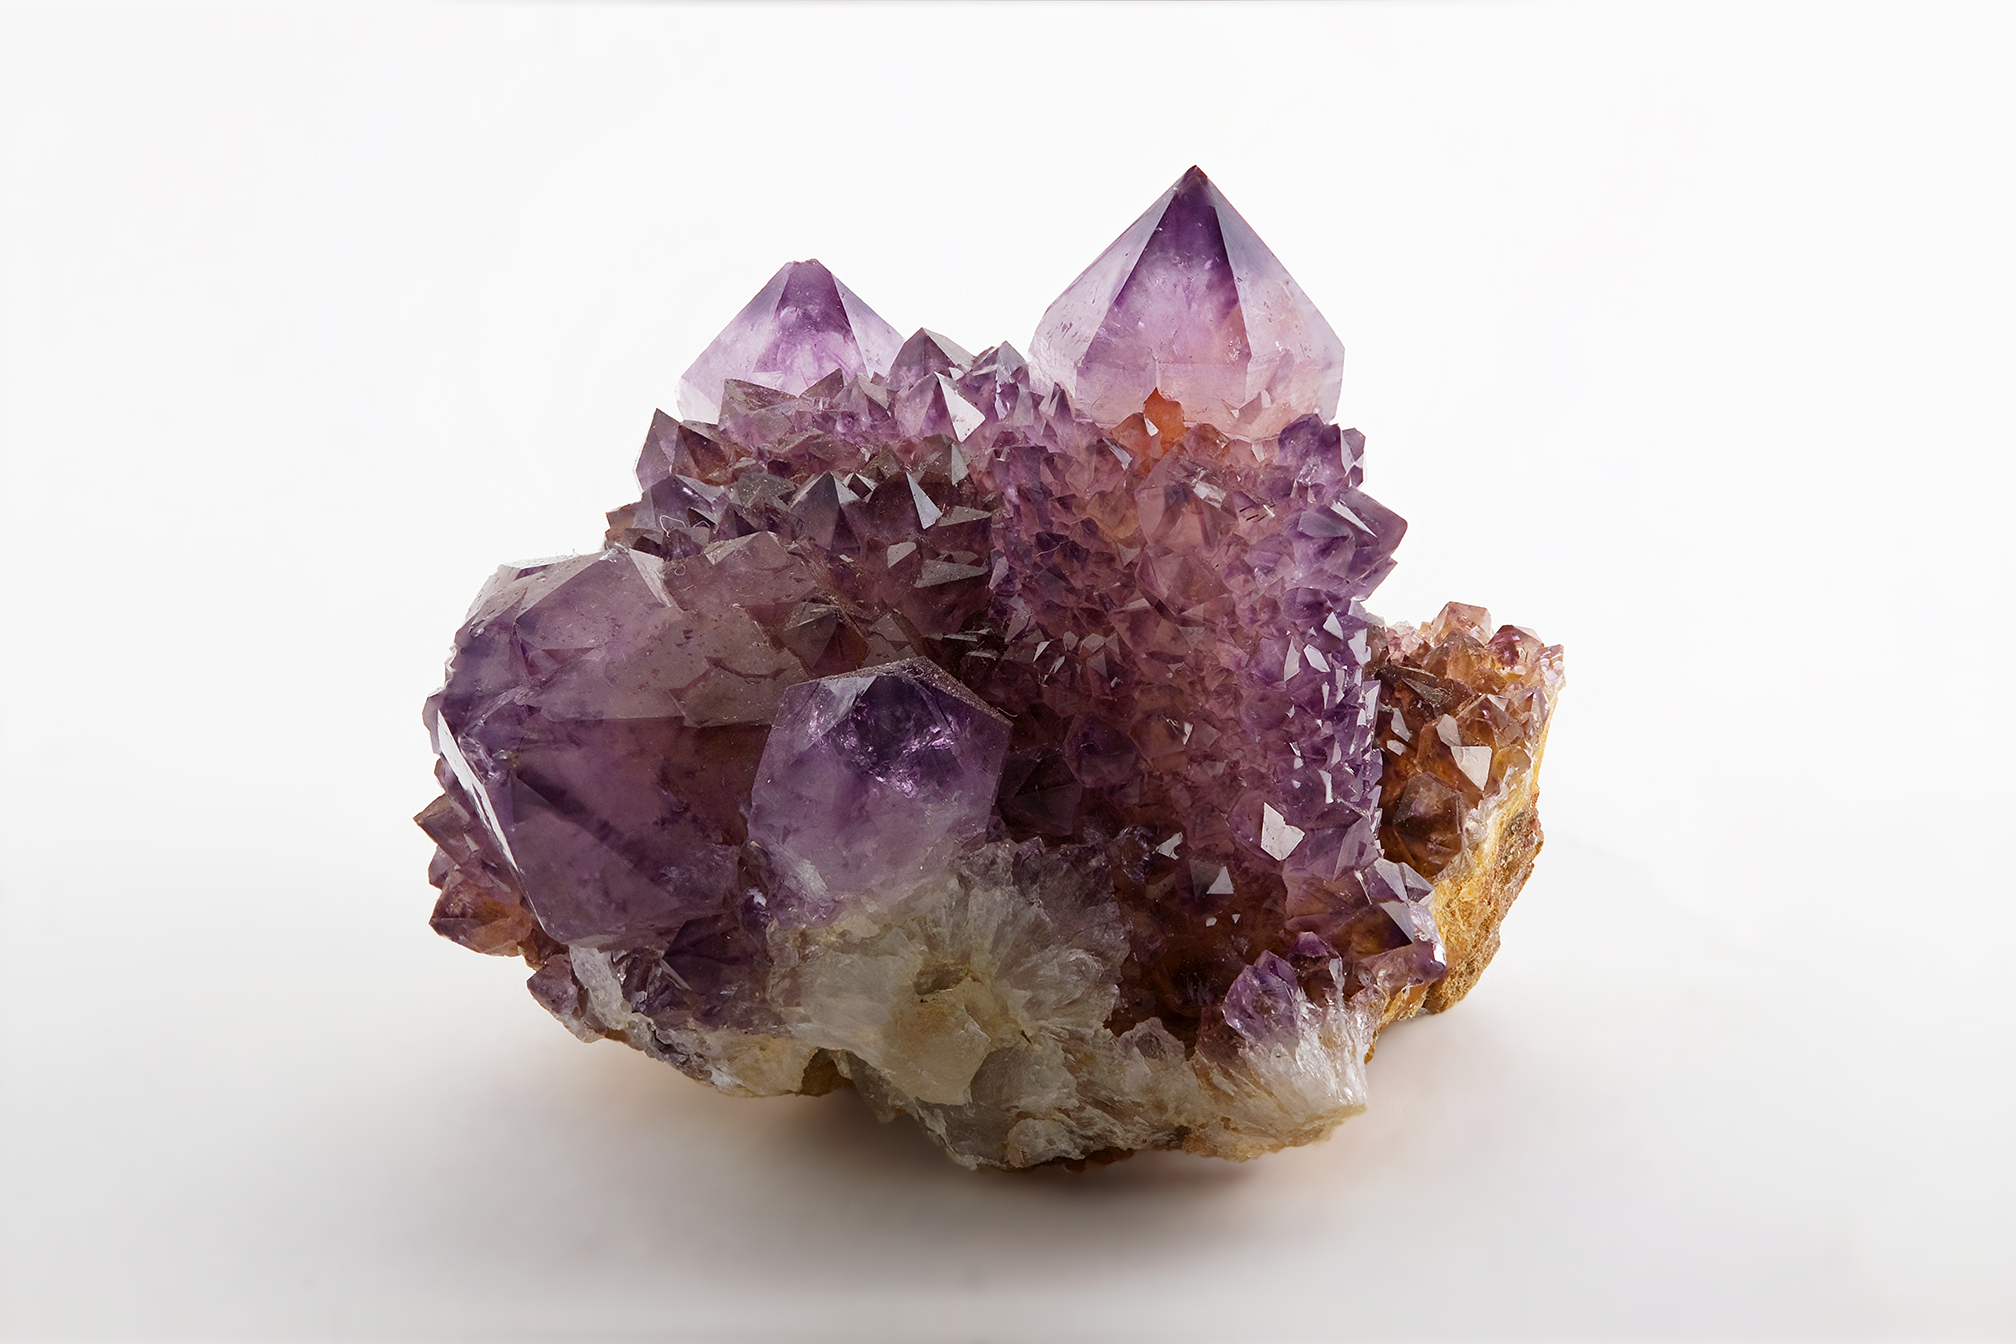 Amethyst._Magaliesburg%2C_South_Africa.jpg